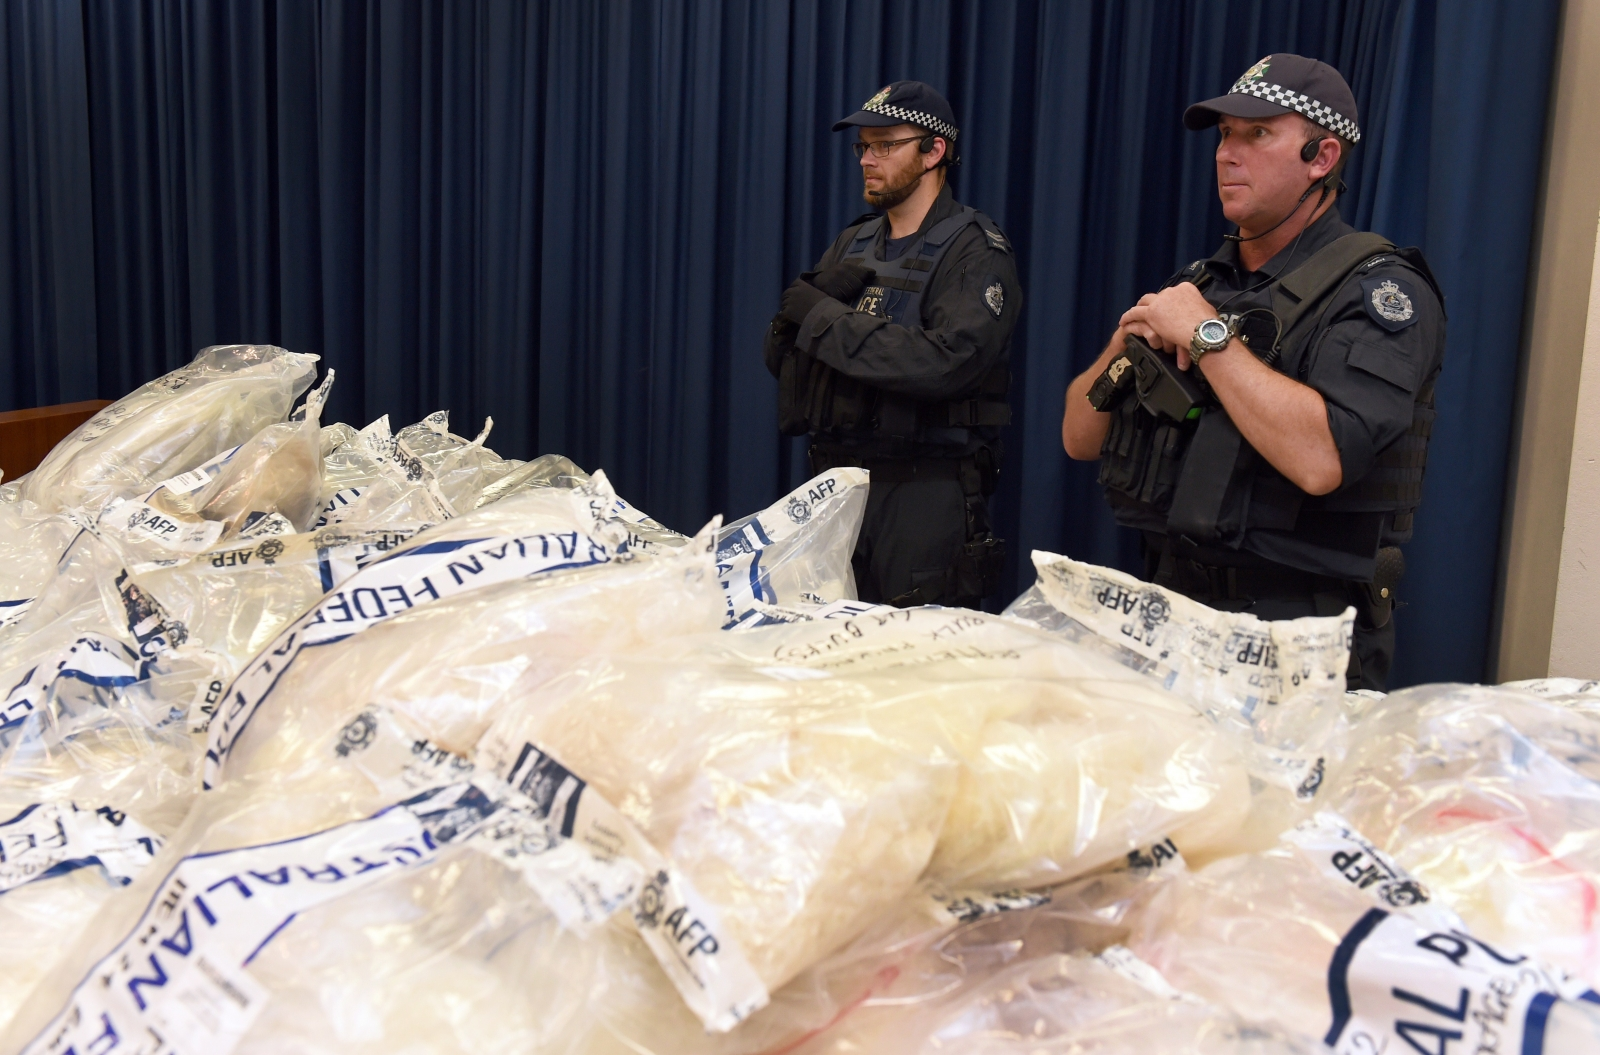 Australian police guard the seized drugs (WILLIAM WEST/AFP/Getty Images)